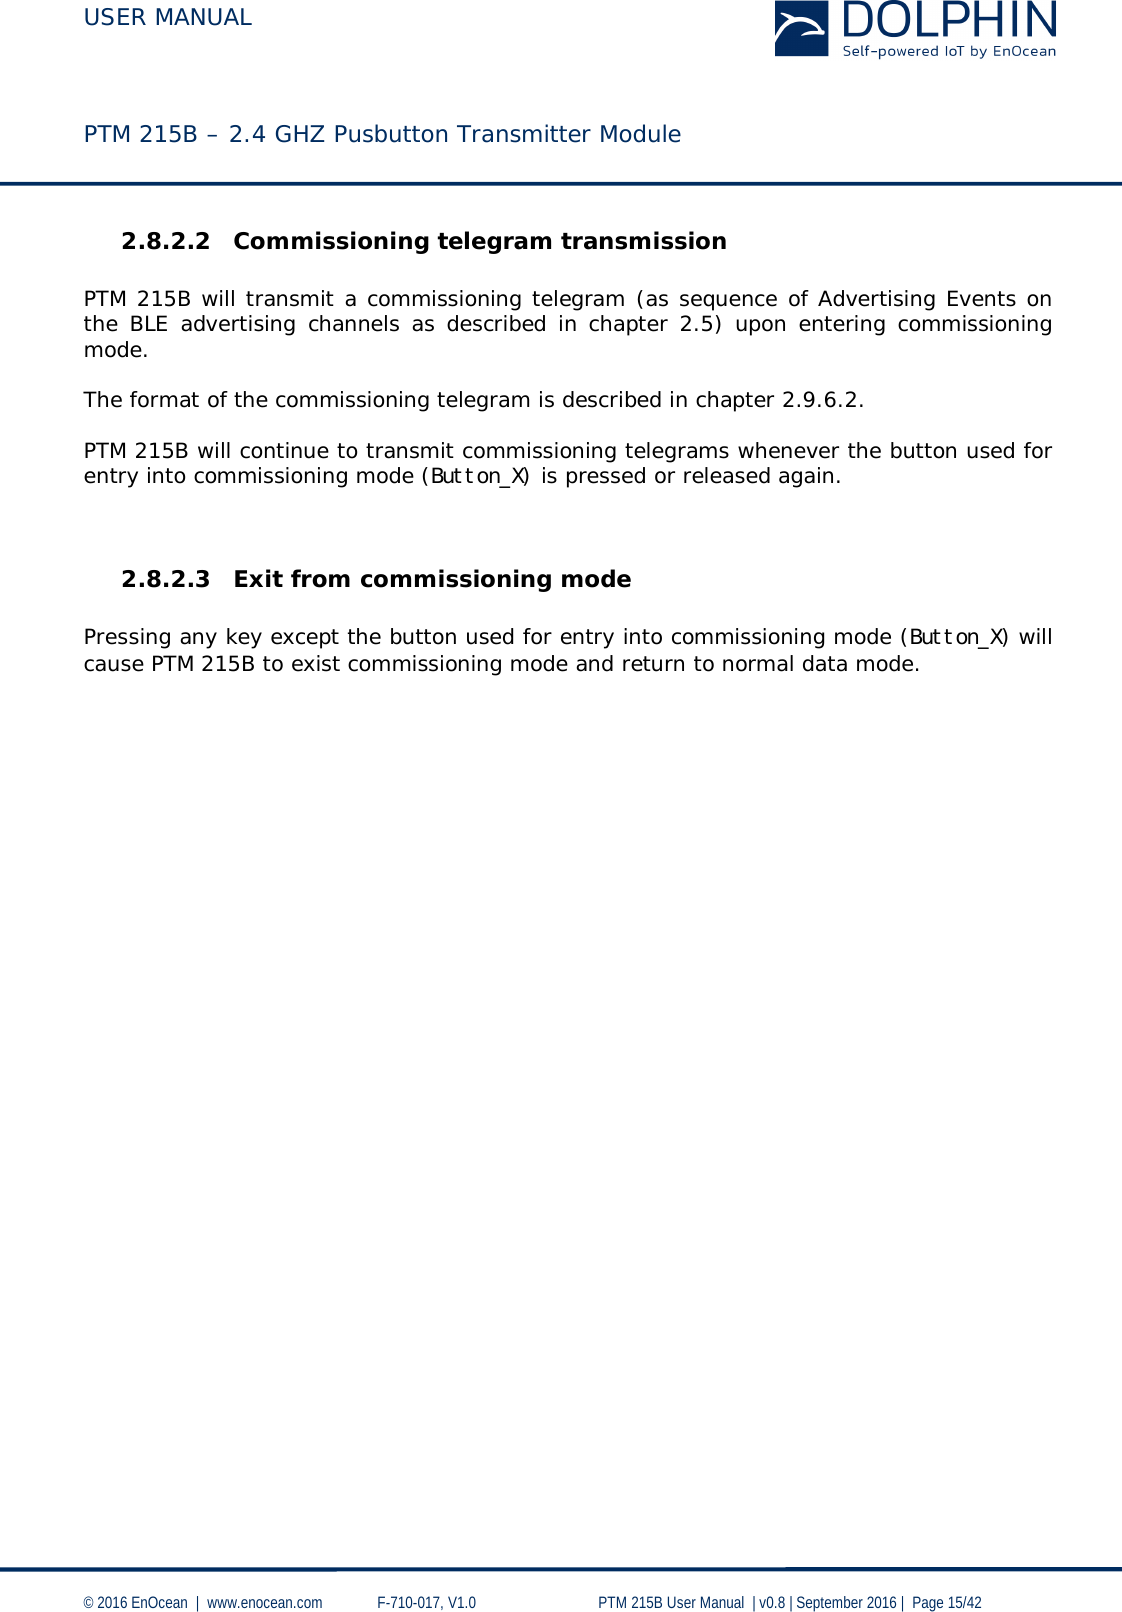 USER MANUAL    PTM 215B – 2.4 GHZ Pusbutton Transmitter Module  © 2016 EnOcean     www.enocean.com   F-710-017, V1.0        PTM 215B User Manual    v0.8   September 2016    Page 15/42  2.8.2.2 Commissioning telegram transmission   PTM 215B will transmit a commissioning telegram (as sequence of Advertising Events on the BLE advertising channels as described in chapter 2.5) upon entering commissioning mode.   The format of the commissioning telegram is described in chapter 2.9.6.2.  PTM 215B will continue to transmit commissioning telegrams whenever the button used for entry into commissioning mode (Button_X) is pressed or released again.   2.8.2.3 Exit from commissioning mode   Pressing any key except the button used for entry into commissioning mode (Button_X) will cause PTM 215B to exist commissioning mode and return to normal data mode.